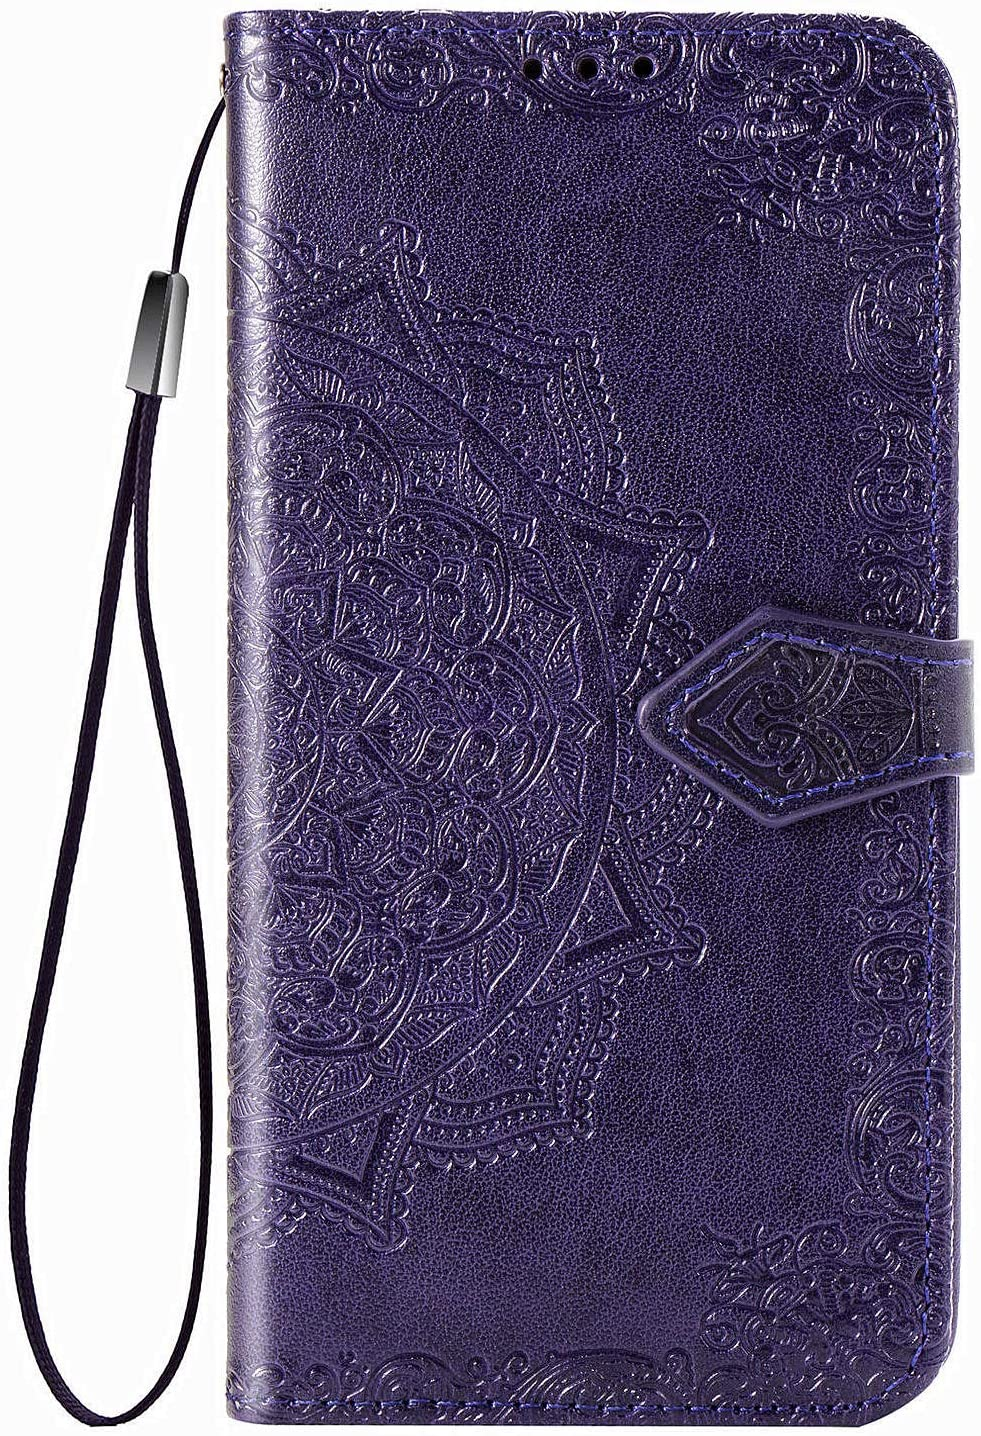 Wallet Case Compatible with iPhone 11 Pro Max 6.5 inch Mandala Flower Floral Embossed PU Leather Cover [Stand Feature] with Wrist Strap Hole [3-Slots] ID&Credit Cards Pocket Magnetic Clasps -Purple